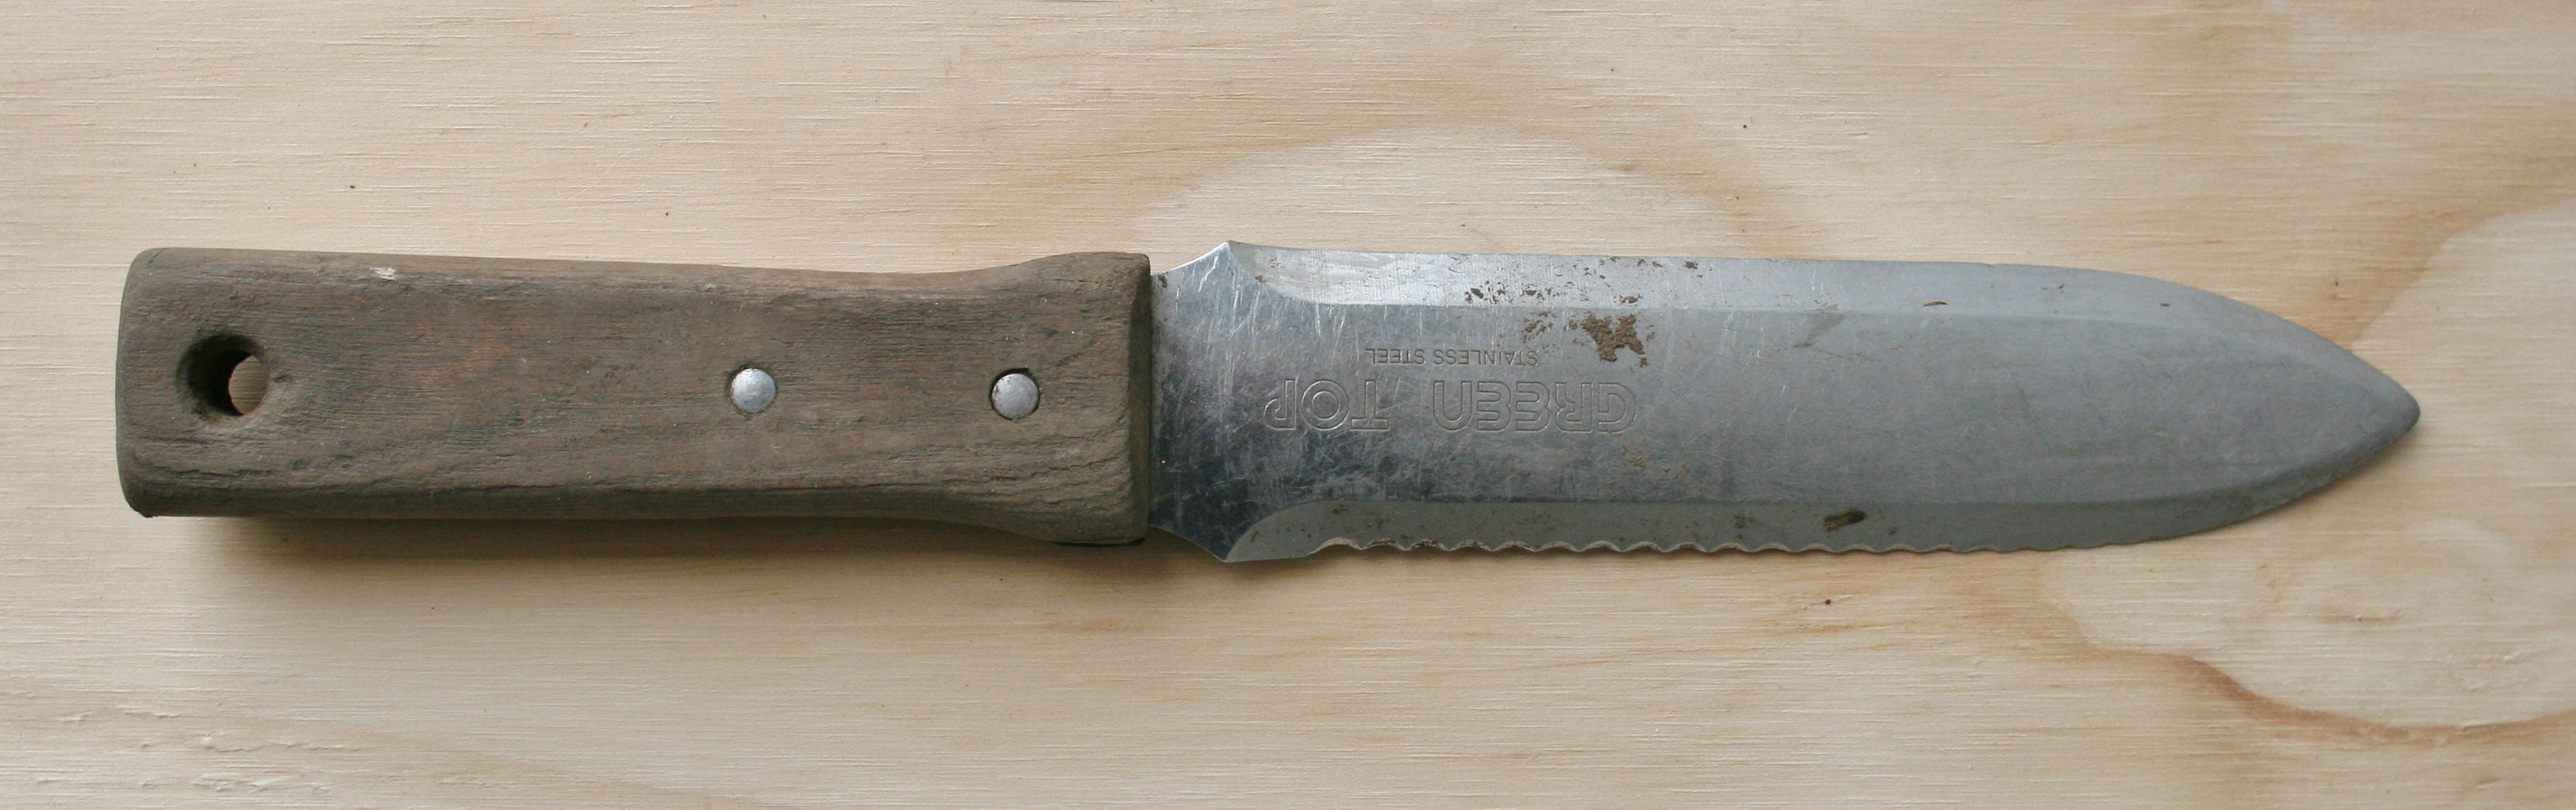 Hori-hori soil knife review (15)